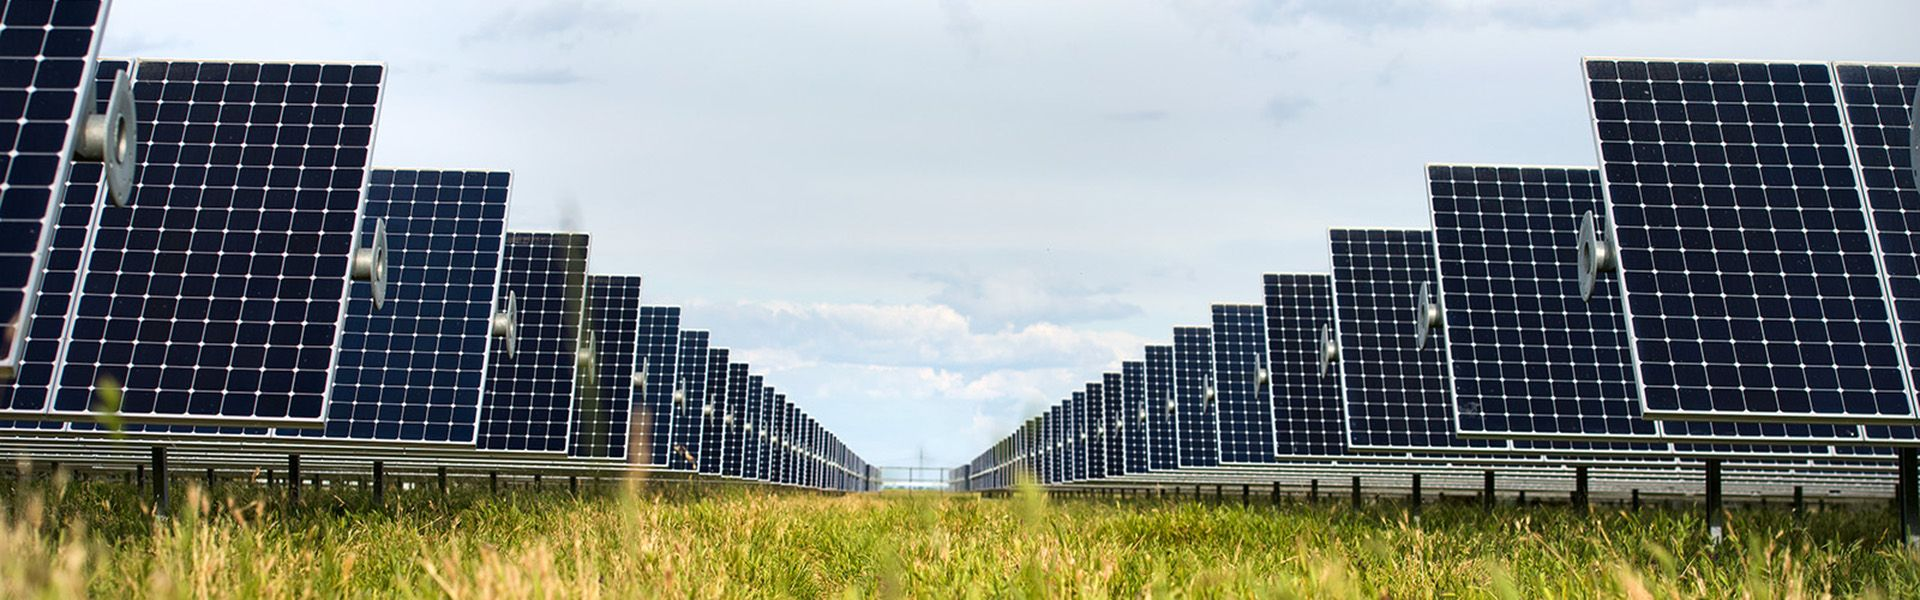 sunpower solar array in field with green grass